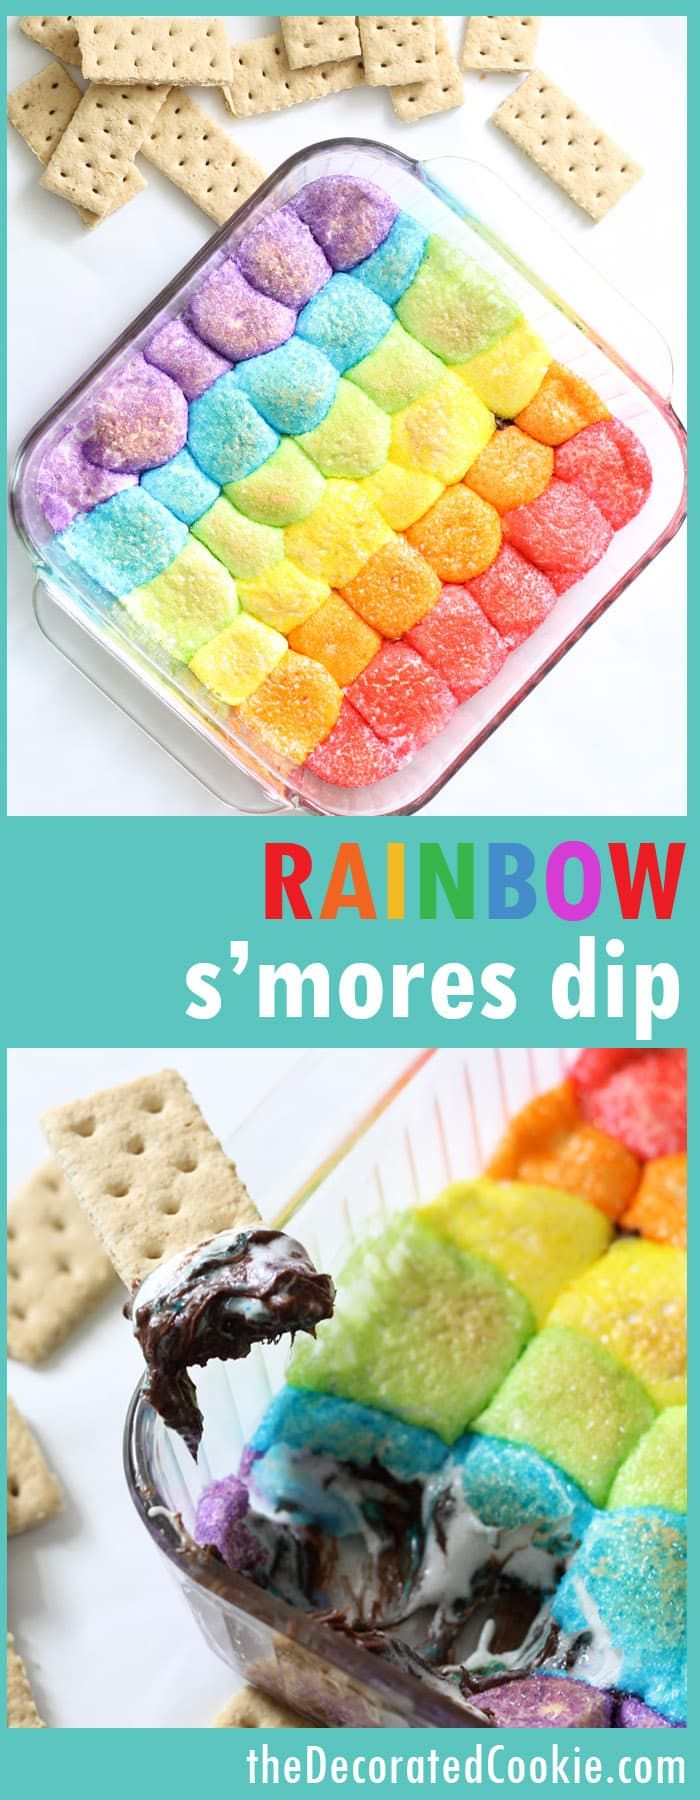 rainbow s'mores dip -- EASY, delicious, colorful dessert dip with video how-tos